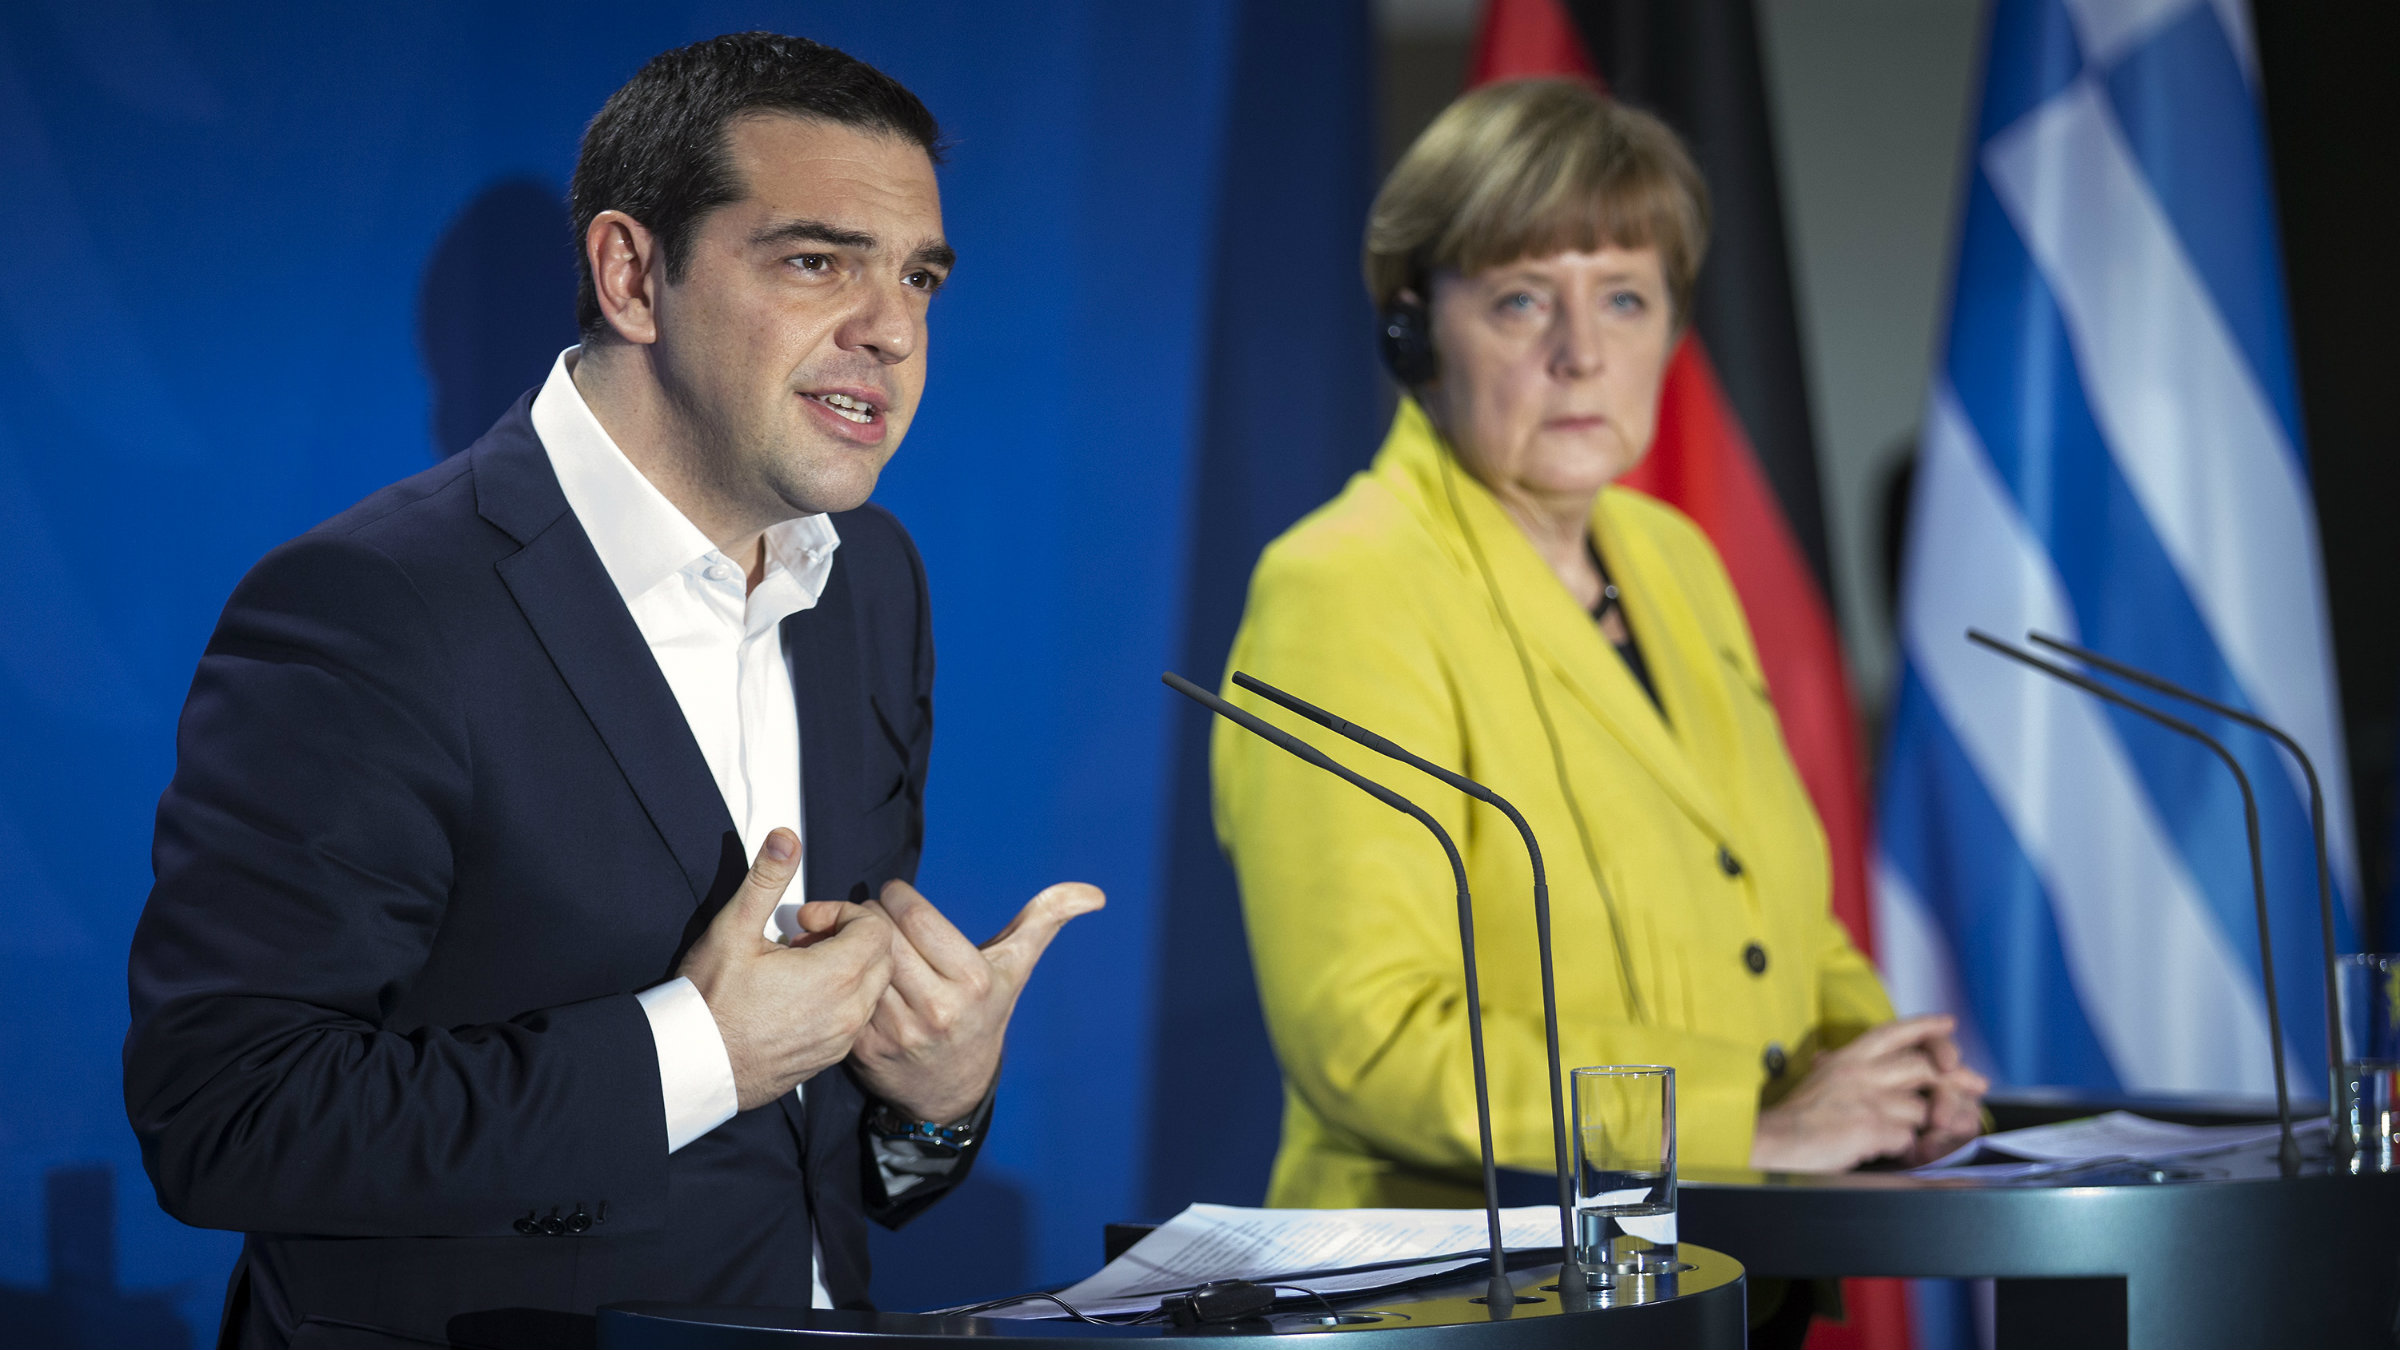 German Chancellor Angela Merkel and Greek Prime Minister Alexis Tsipras address a news conference following talks at the Chancellery in Berlin.